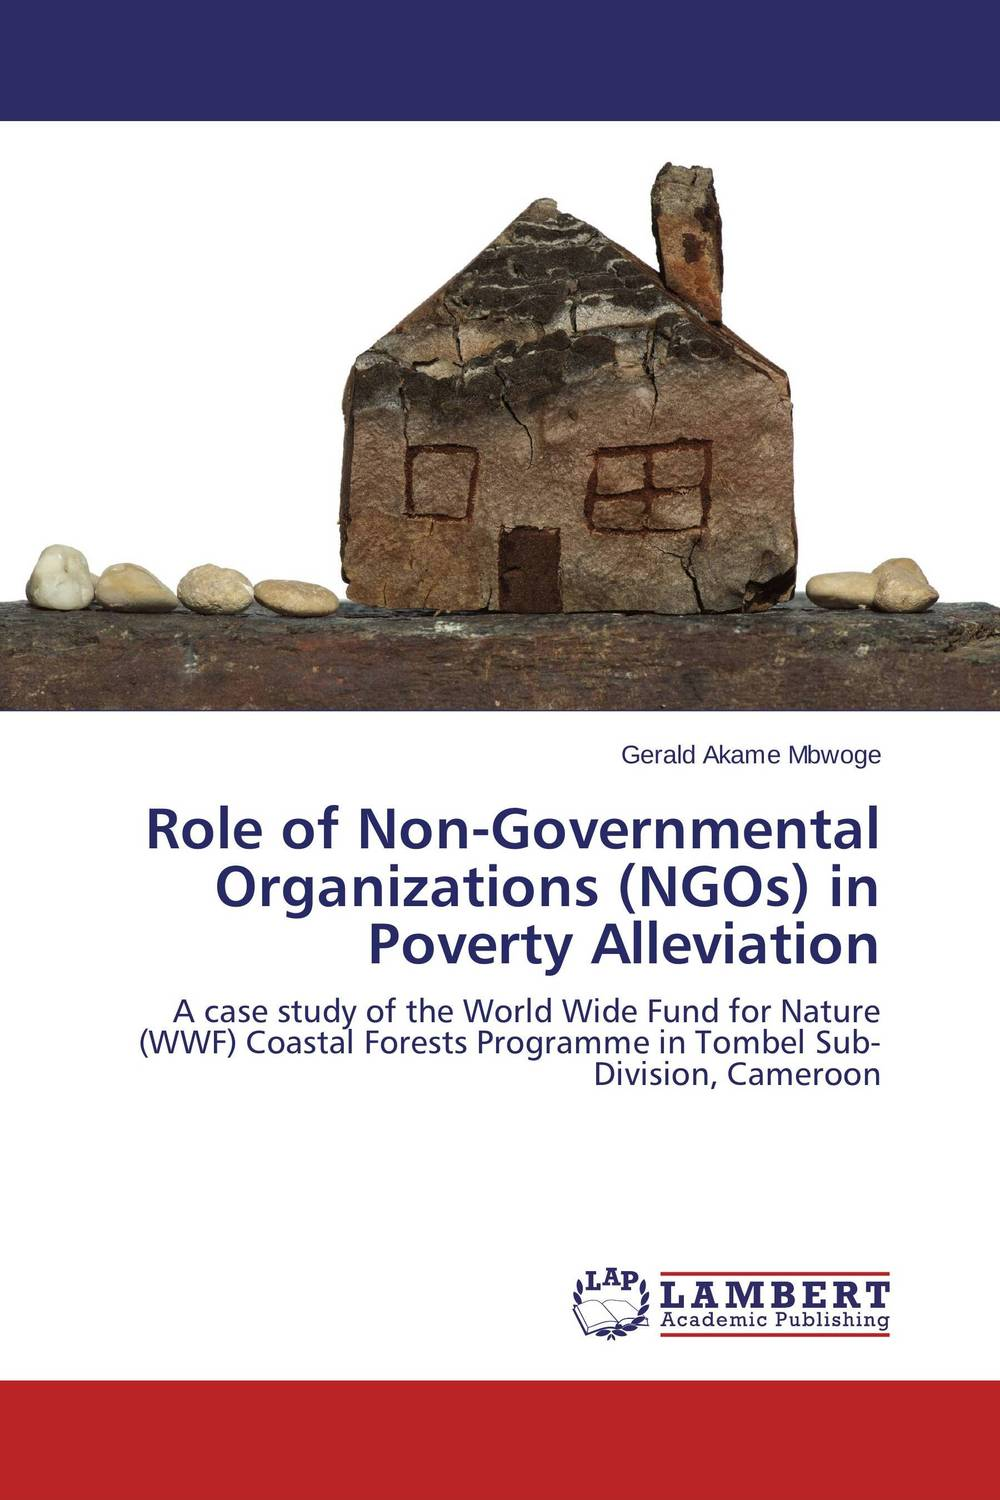 Role of Non-Governmental Organizations (NGOs) in Poverty Alleviation taisser h h deafalla non wood forest products and poverty alleviation in semi arid region